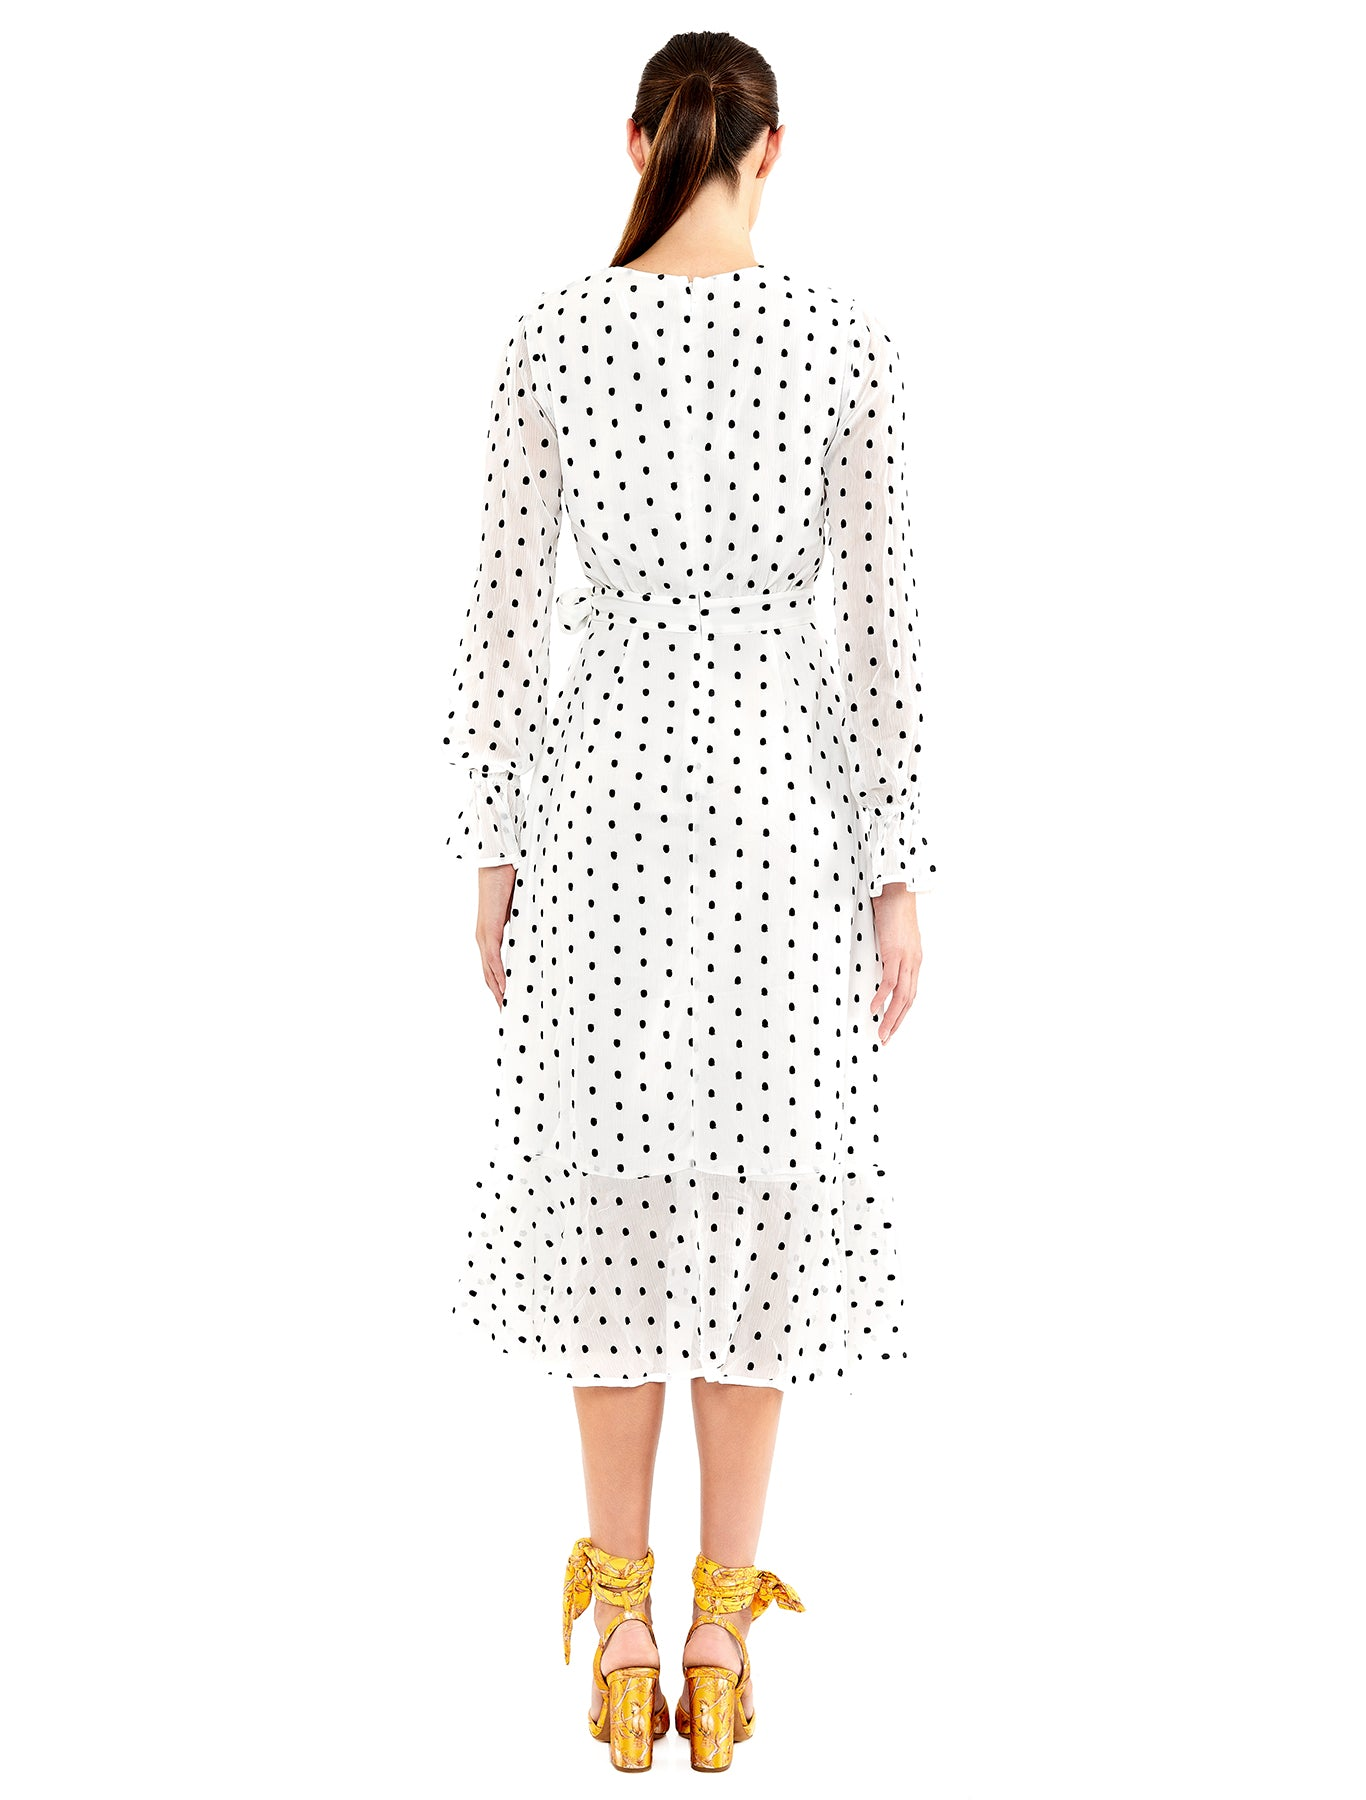 SOMETHING ABOUT YOU L/S MIDI DRESS